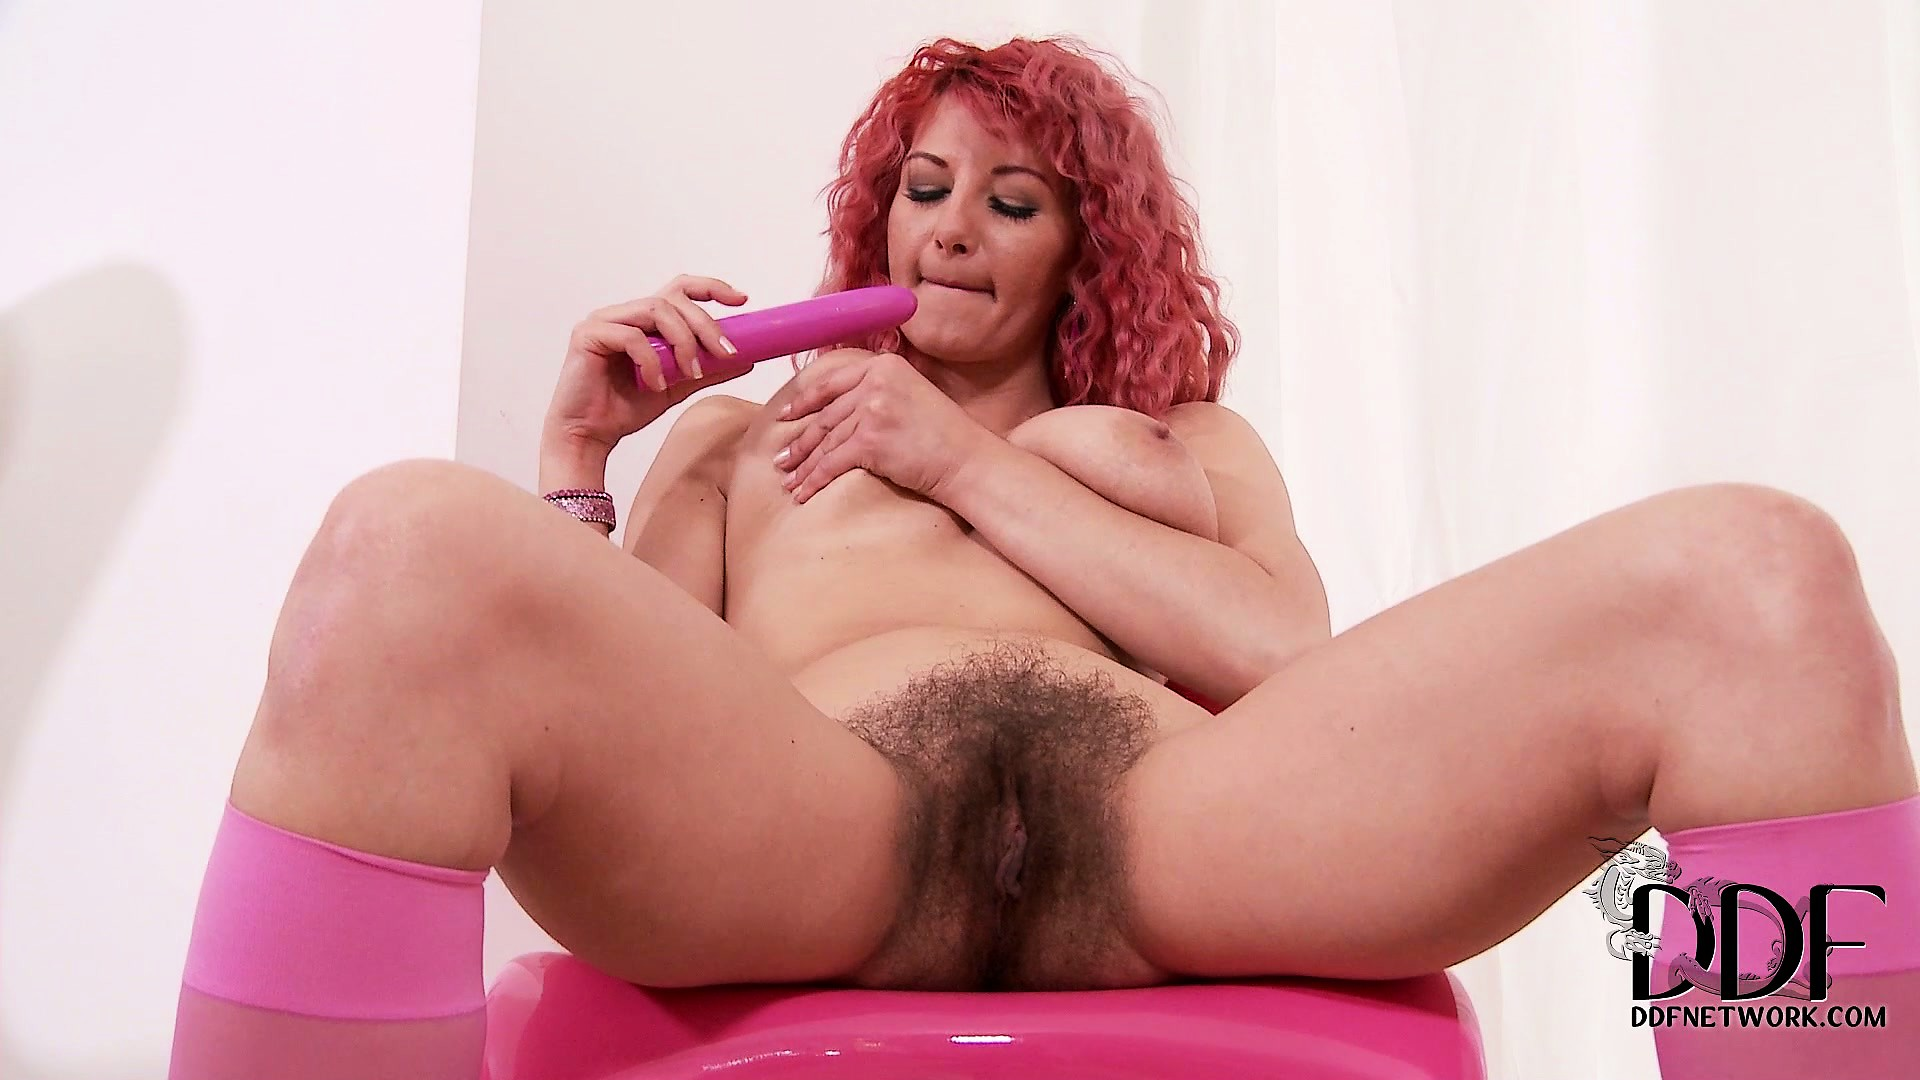 Porno Video of The Hot Redhead Looks Good In Pink, Her Natural Pussy Does Too